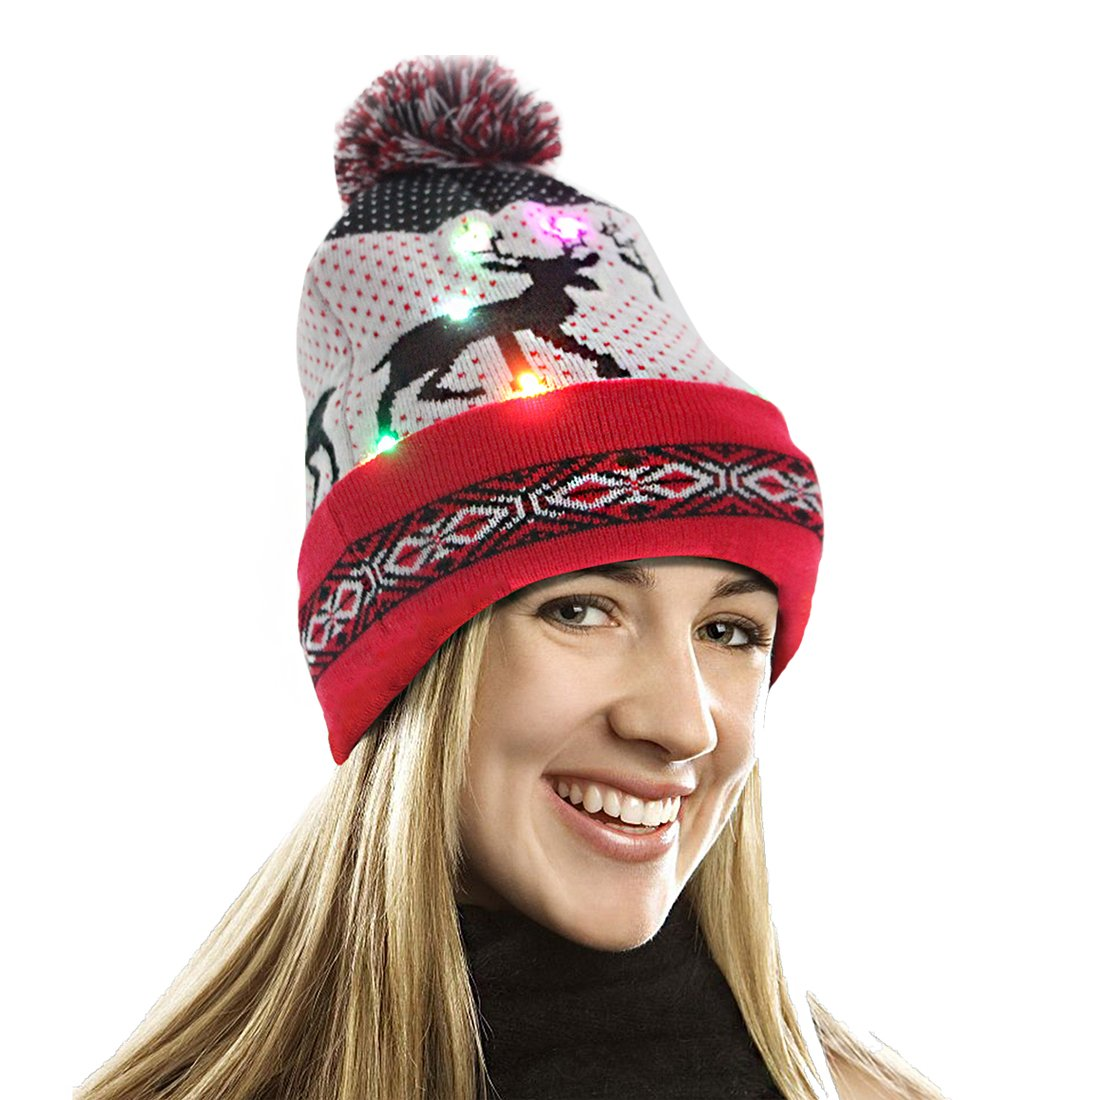 EZGO Light Up Hat With 10 colorful Lights  Unisex Knitted Light Hat With Sika Deer Printing For Party Christmas Gifts Sports Walking Jogging Bicycling